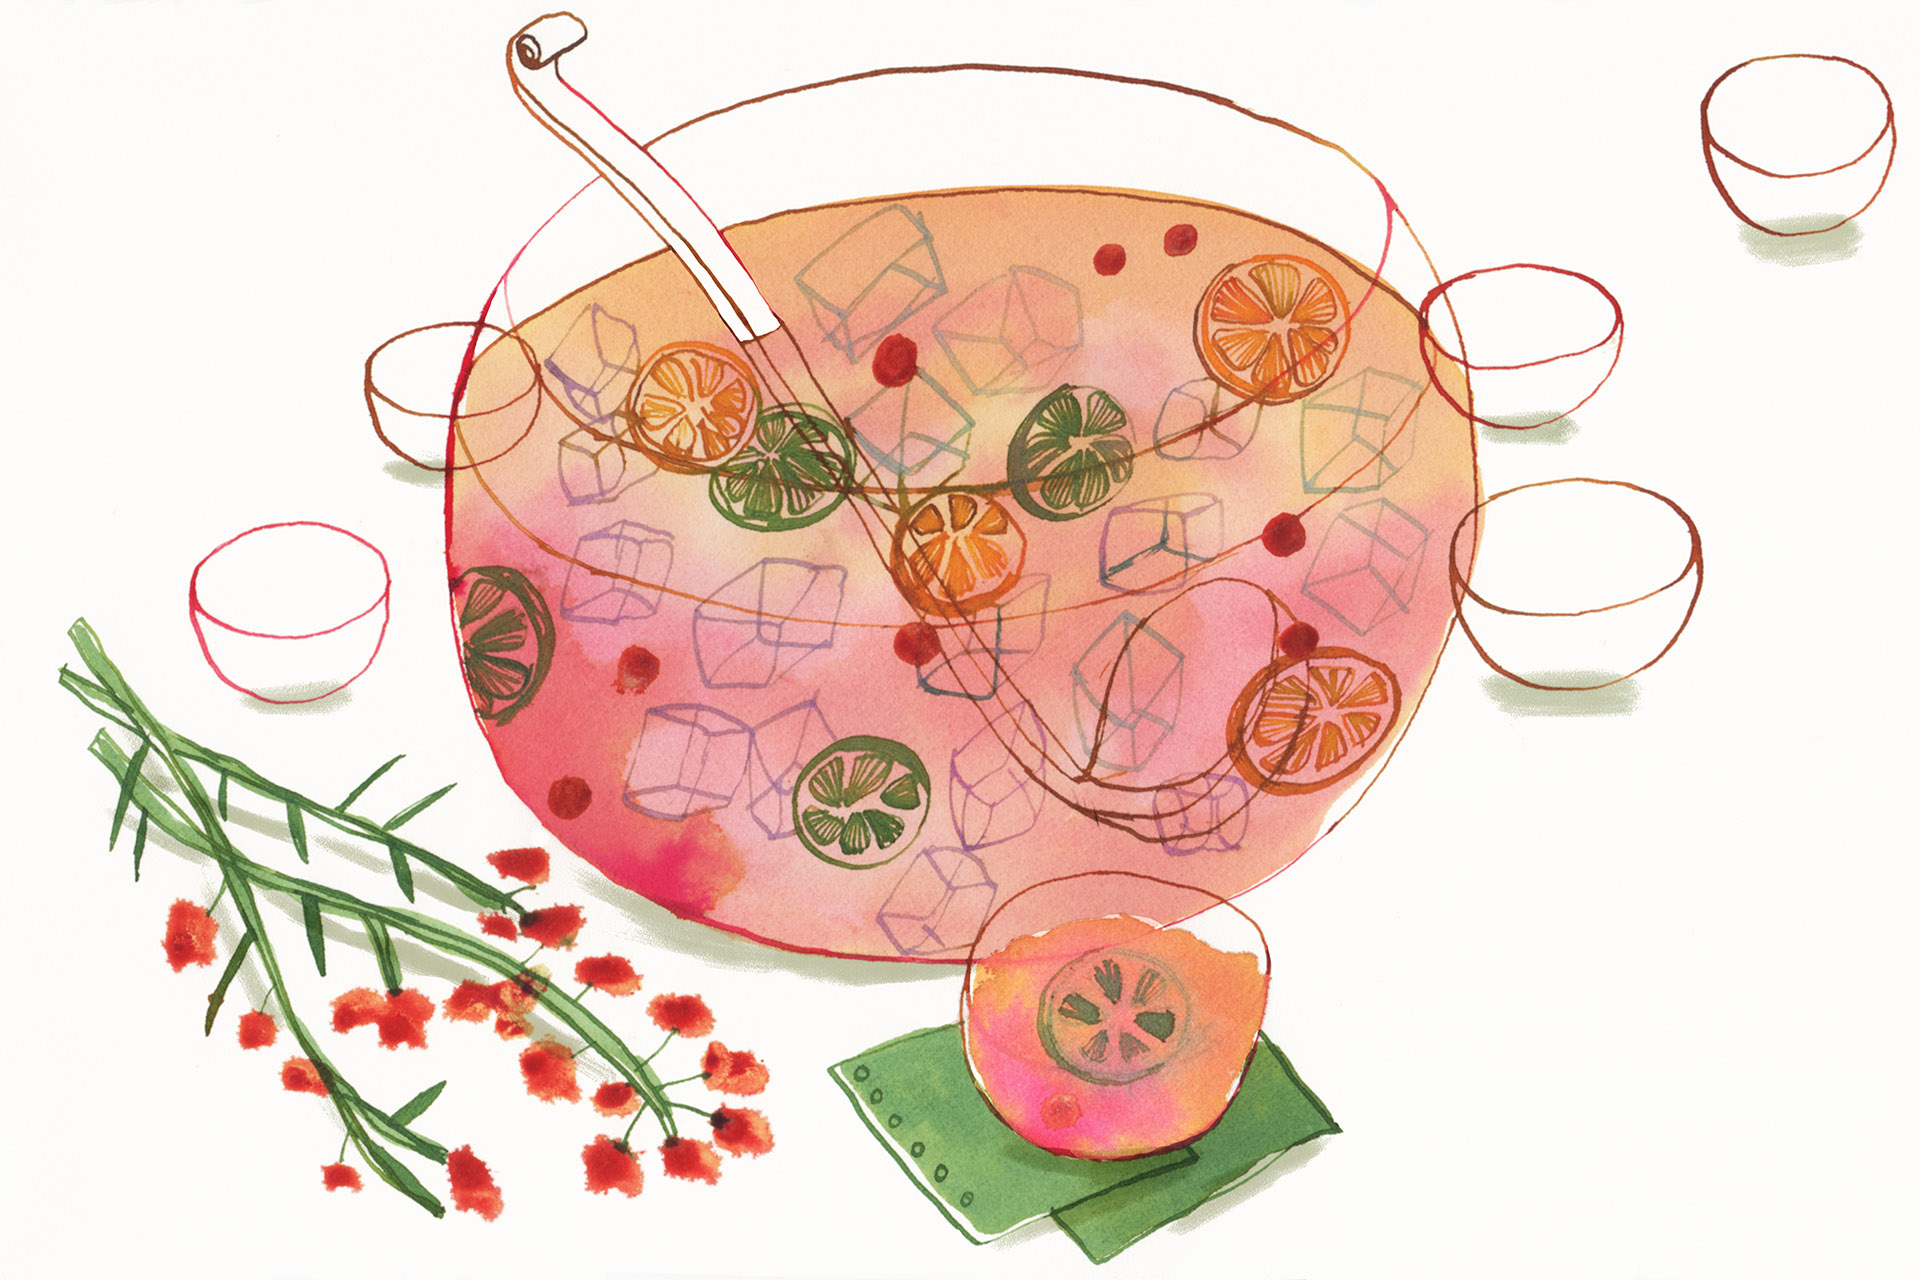 Illustration of a punch bowl filled with delicious boozy things